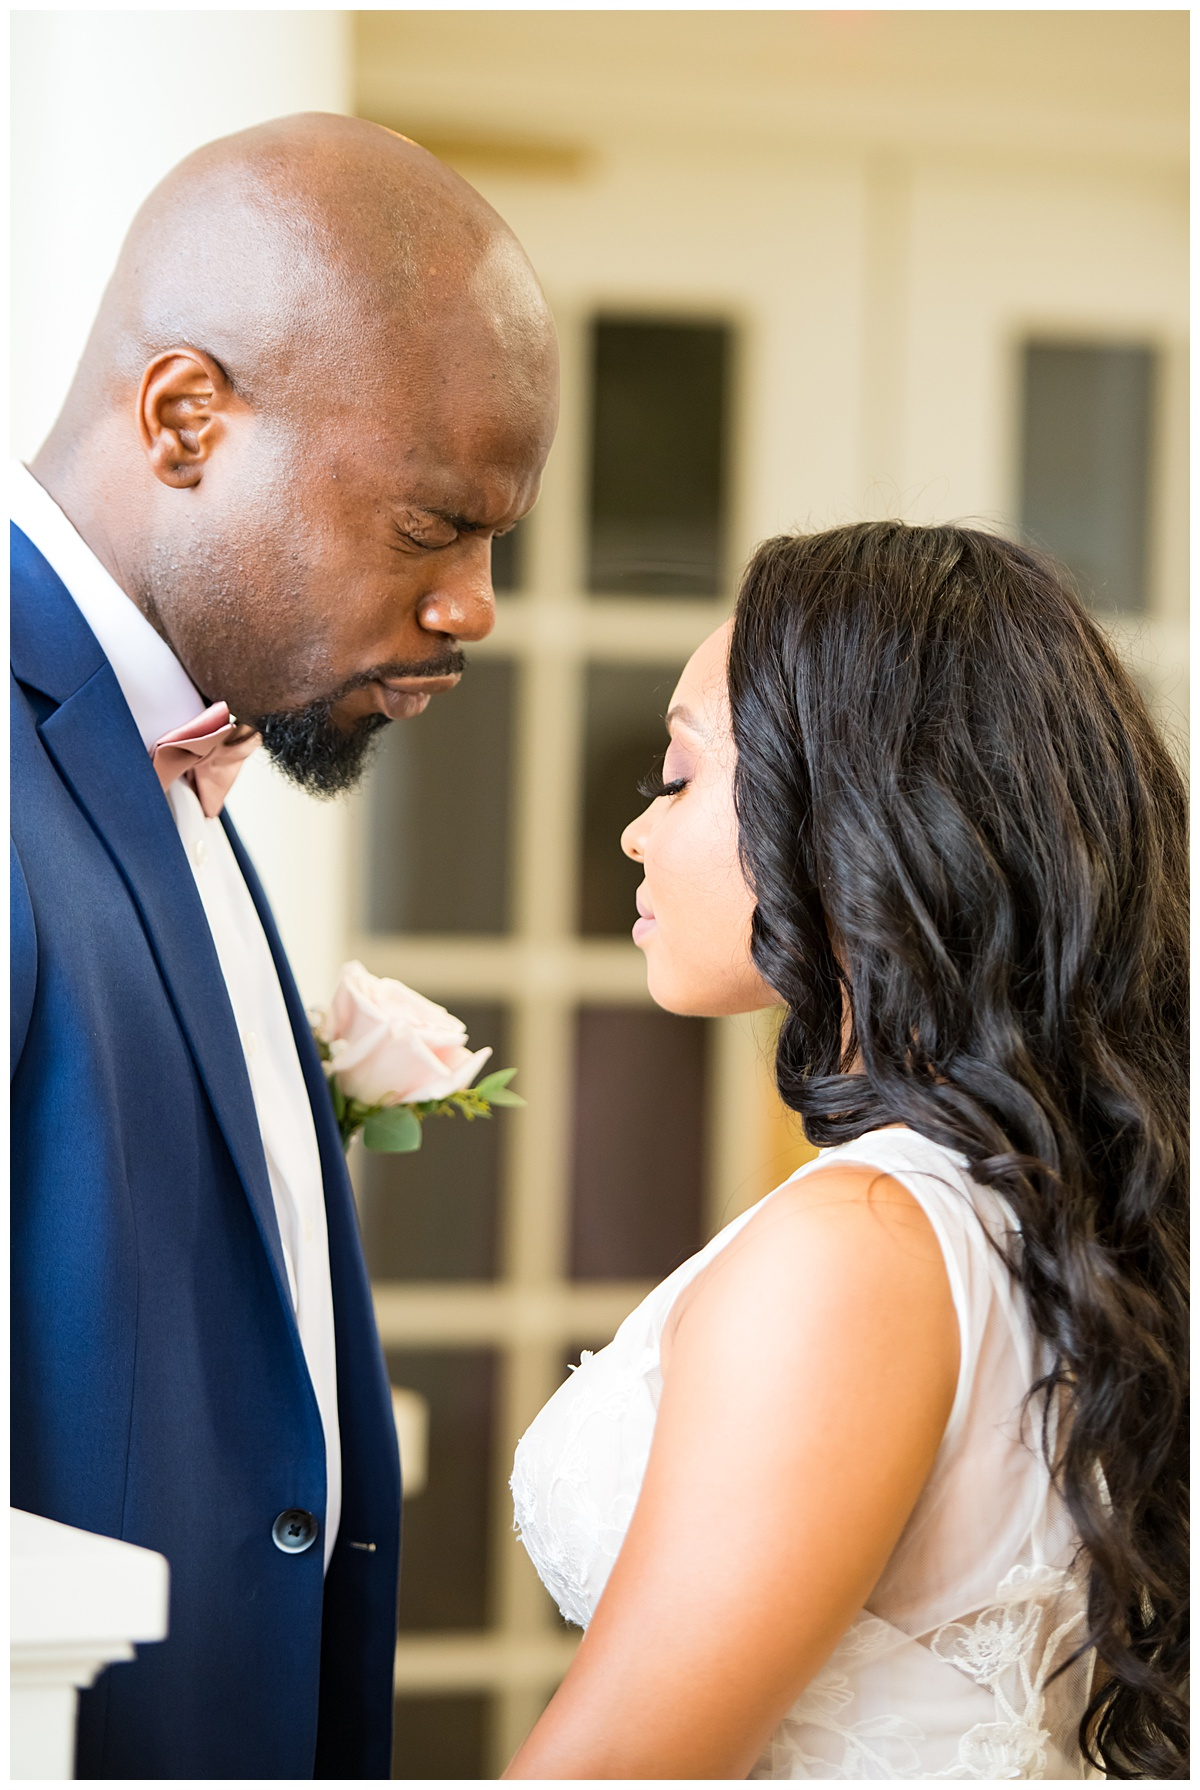 Bride and groom praying at Gordon-conwell theological seminary.jpg